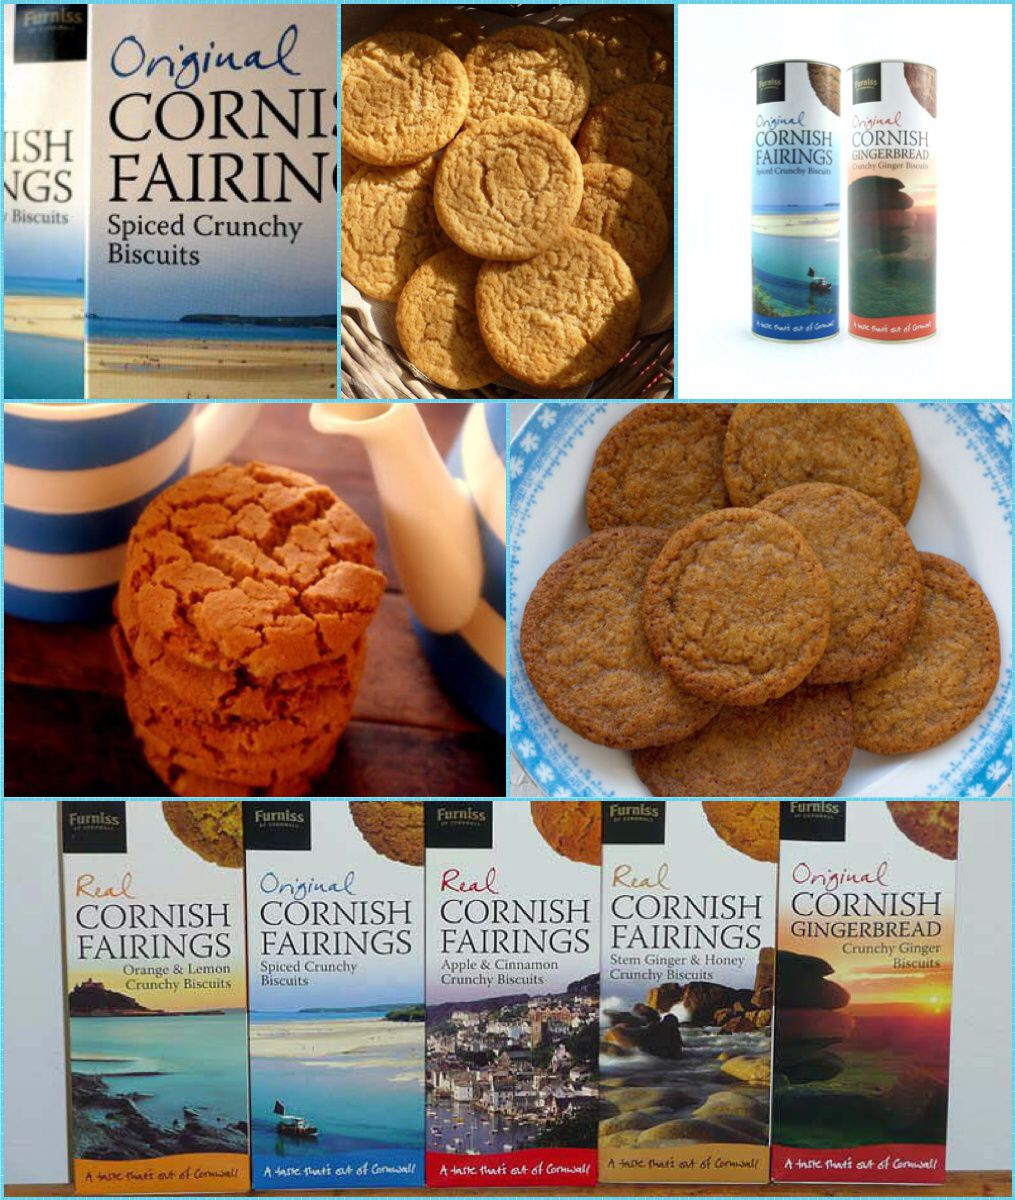 A Cornish fairing is a type of traditional ginger biscuit